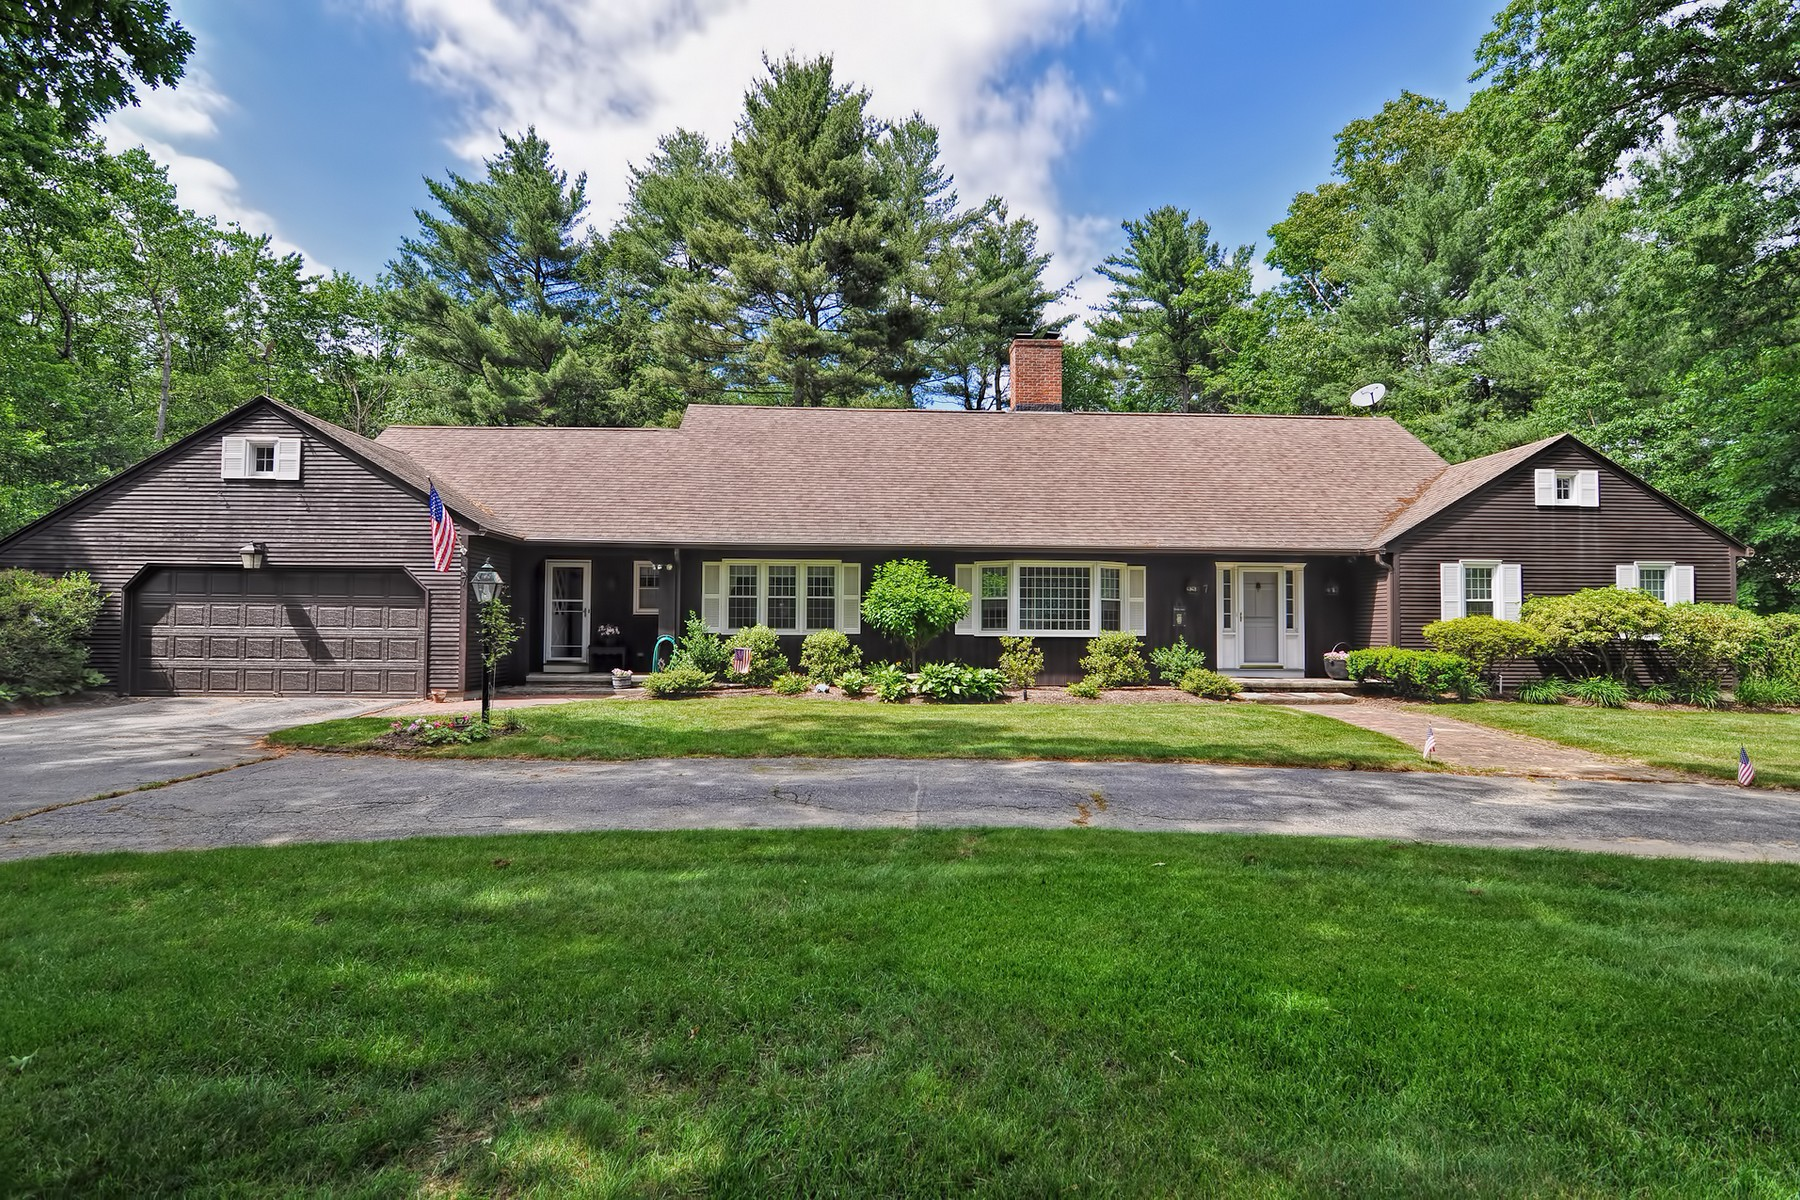 Single Family Home for Sale at Elegant Cape 7 Blueberry Hill Rd Wilbraham, Massachusetts 01095 United States